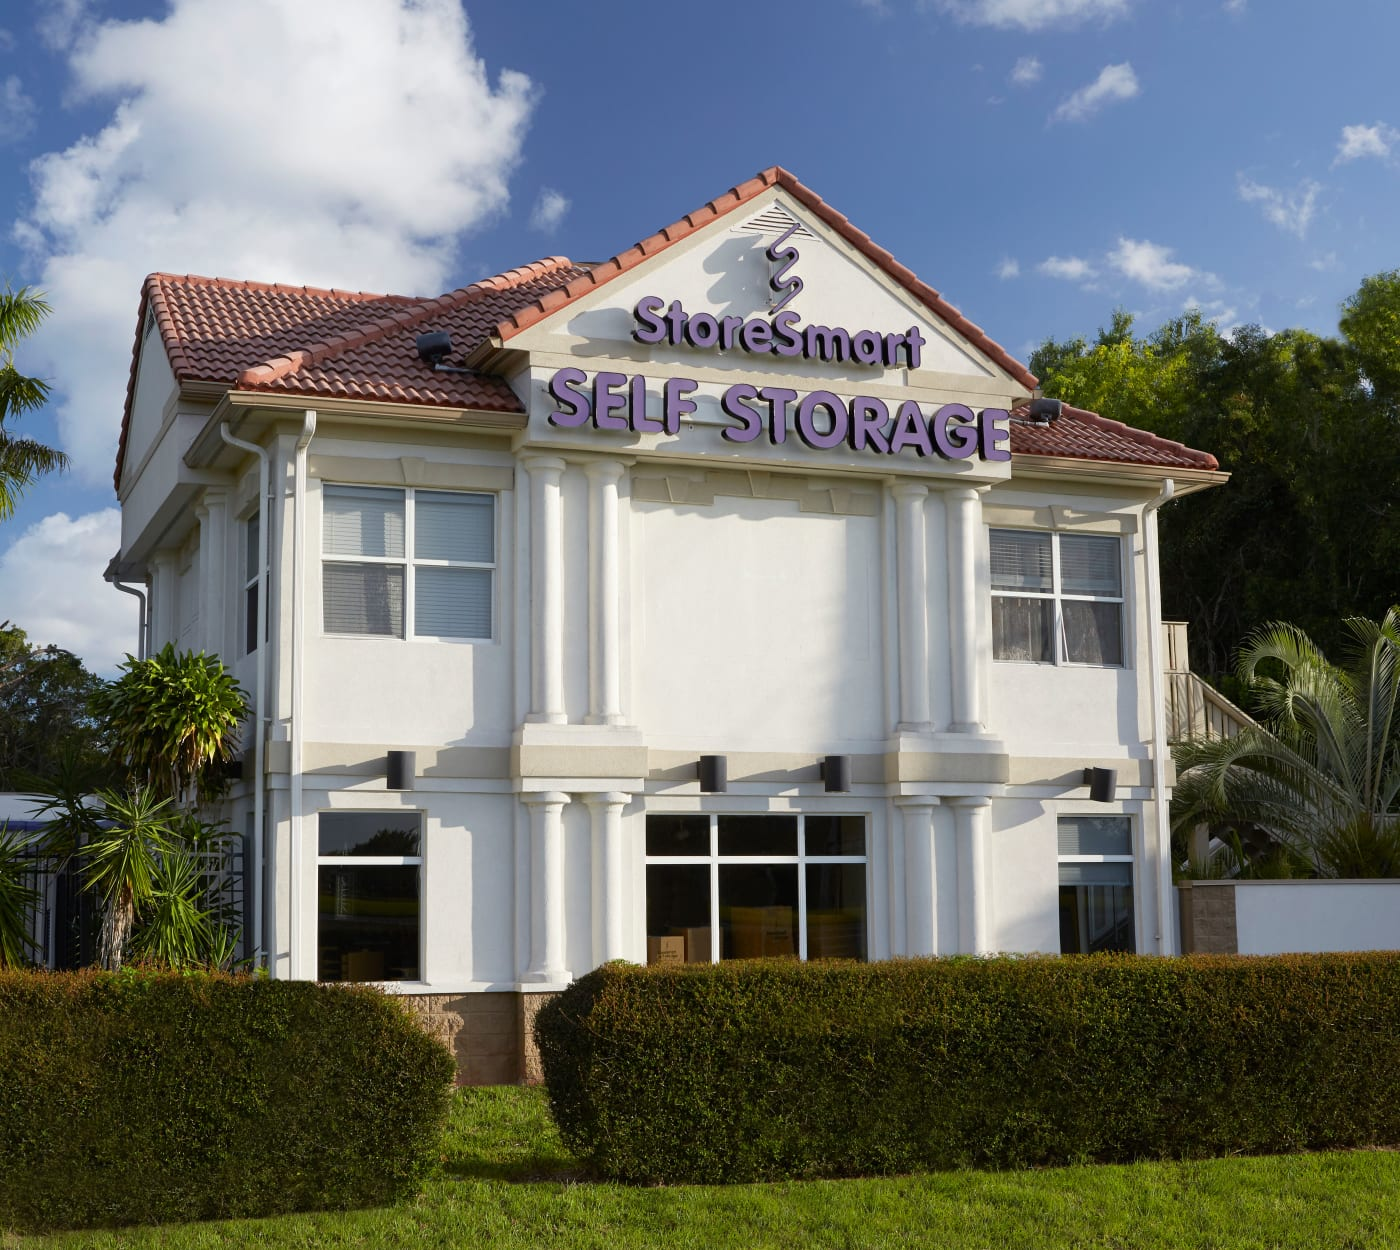 Storage Unit Cost Self Storage Naples Fl Storage Unit Sizes And Prices